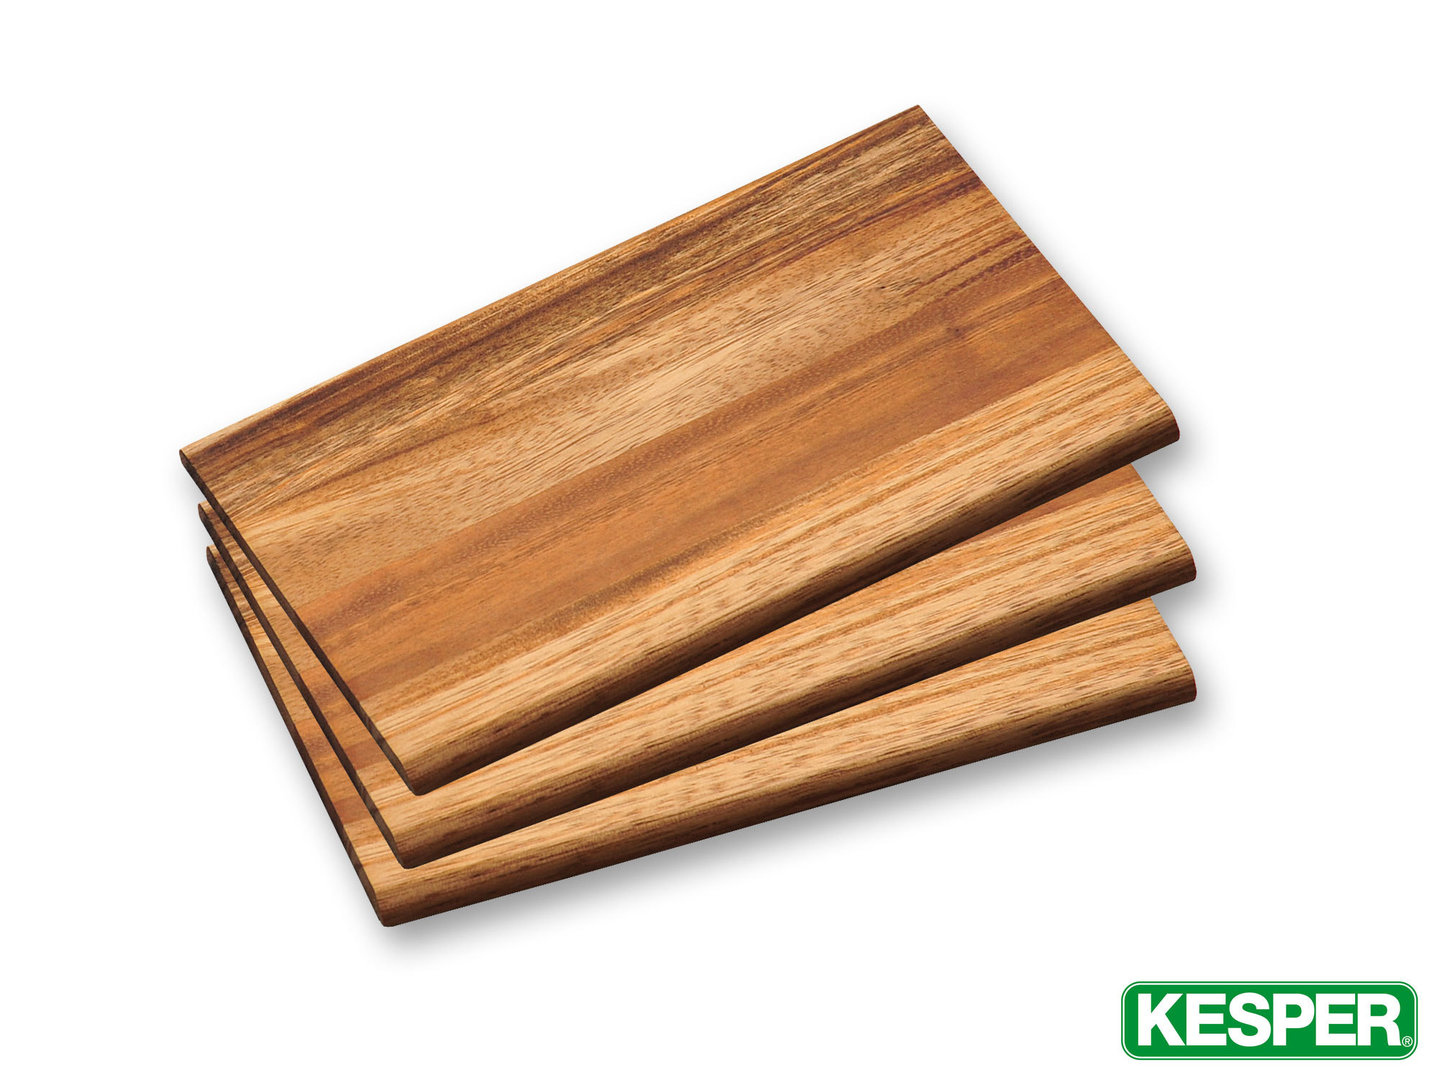 KESPER small acacia cutting board 3pcs